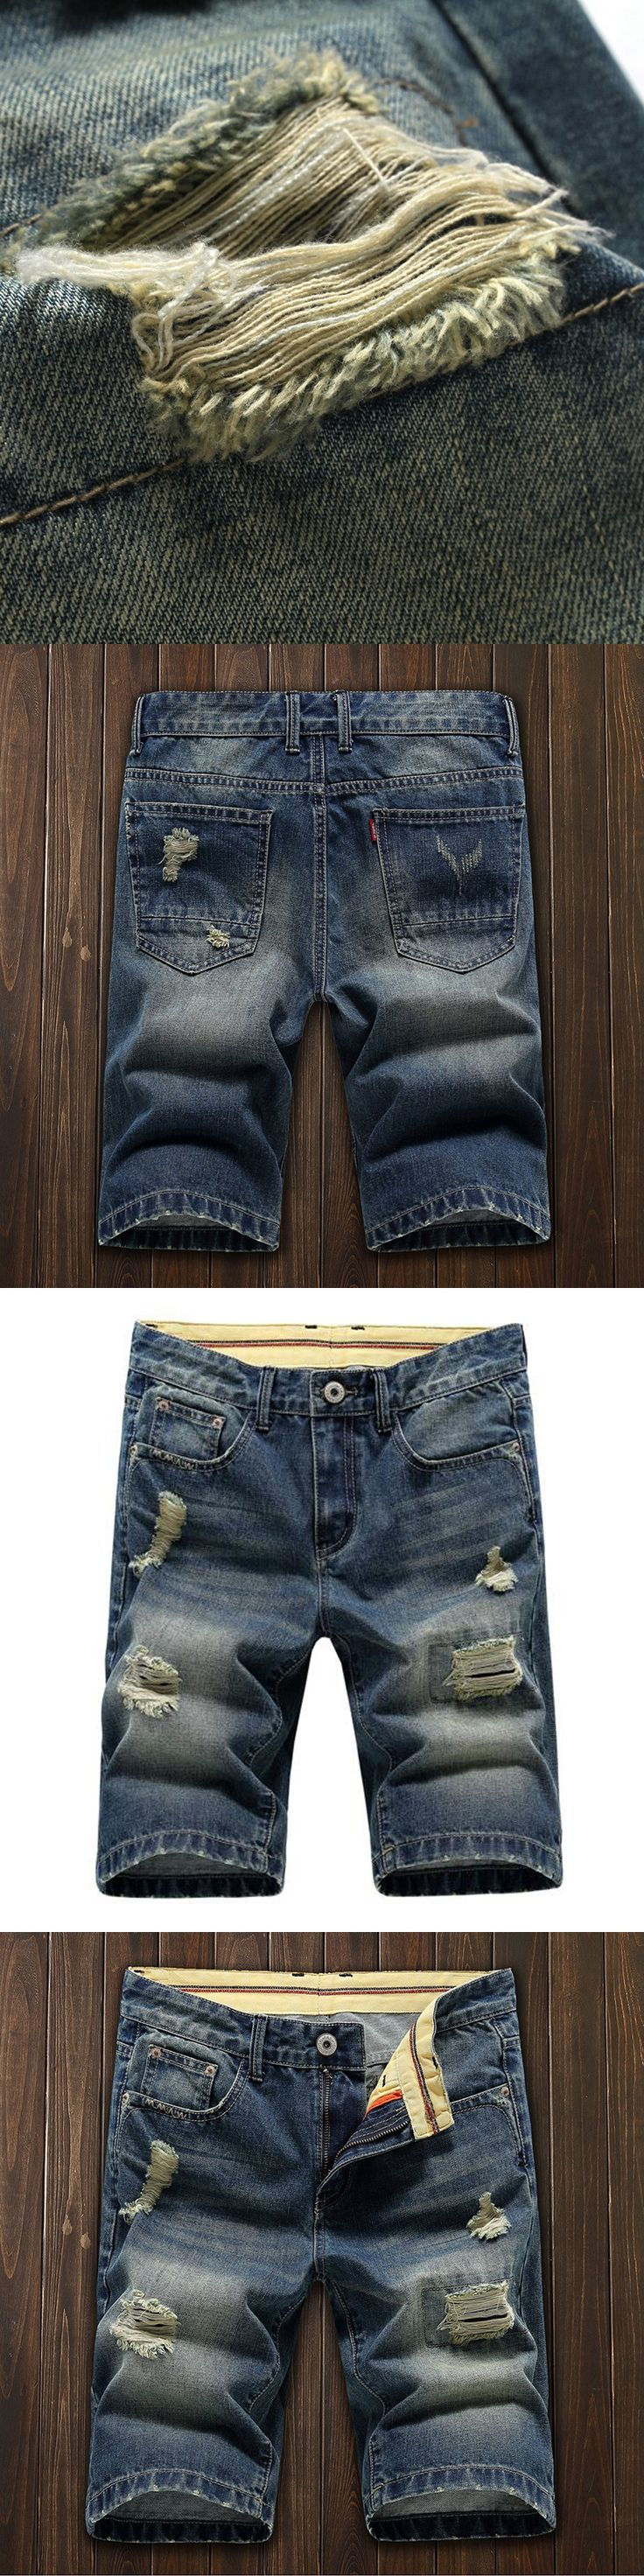 summer style 2017 Vintage solid retro denim shorts homme knee length ripped jeans shorts men straight bermuda casual size 38